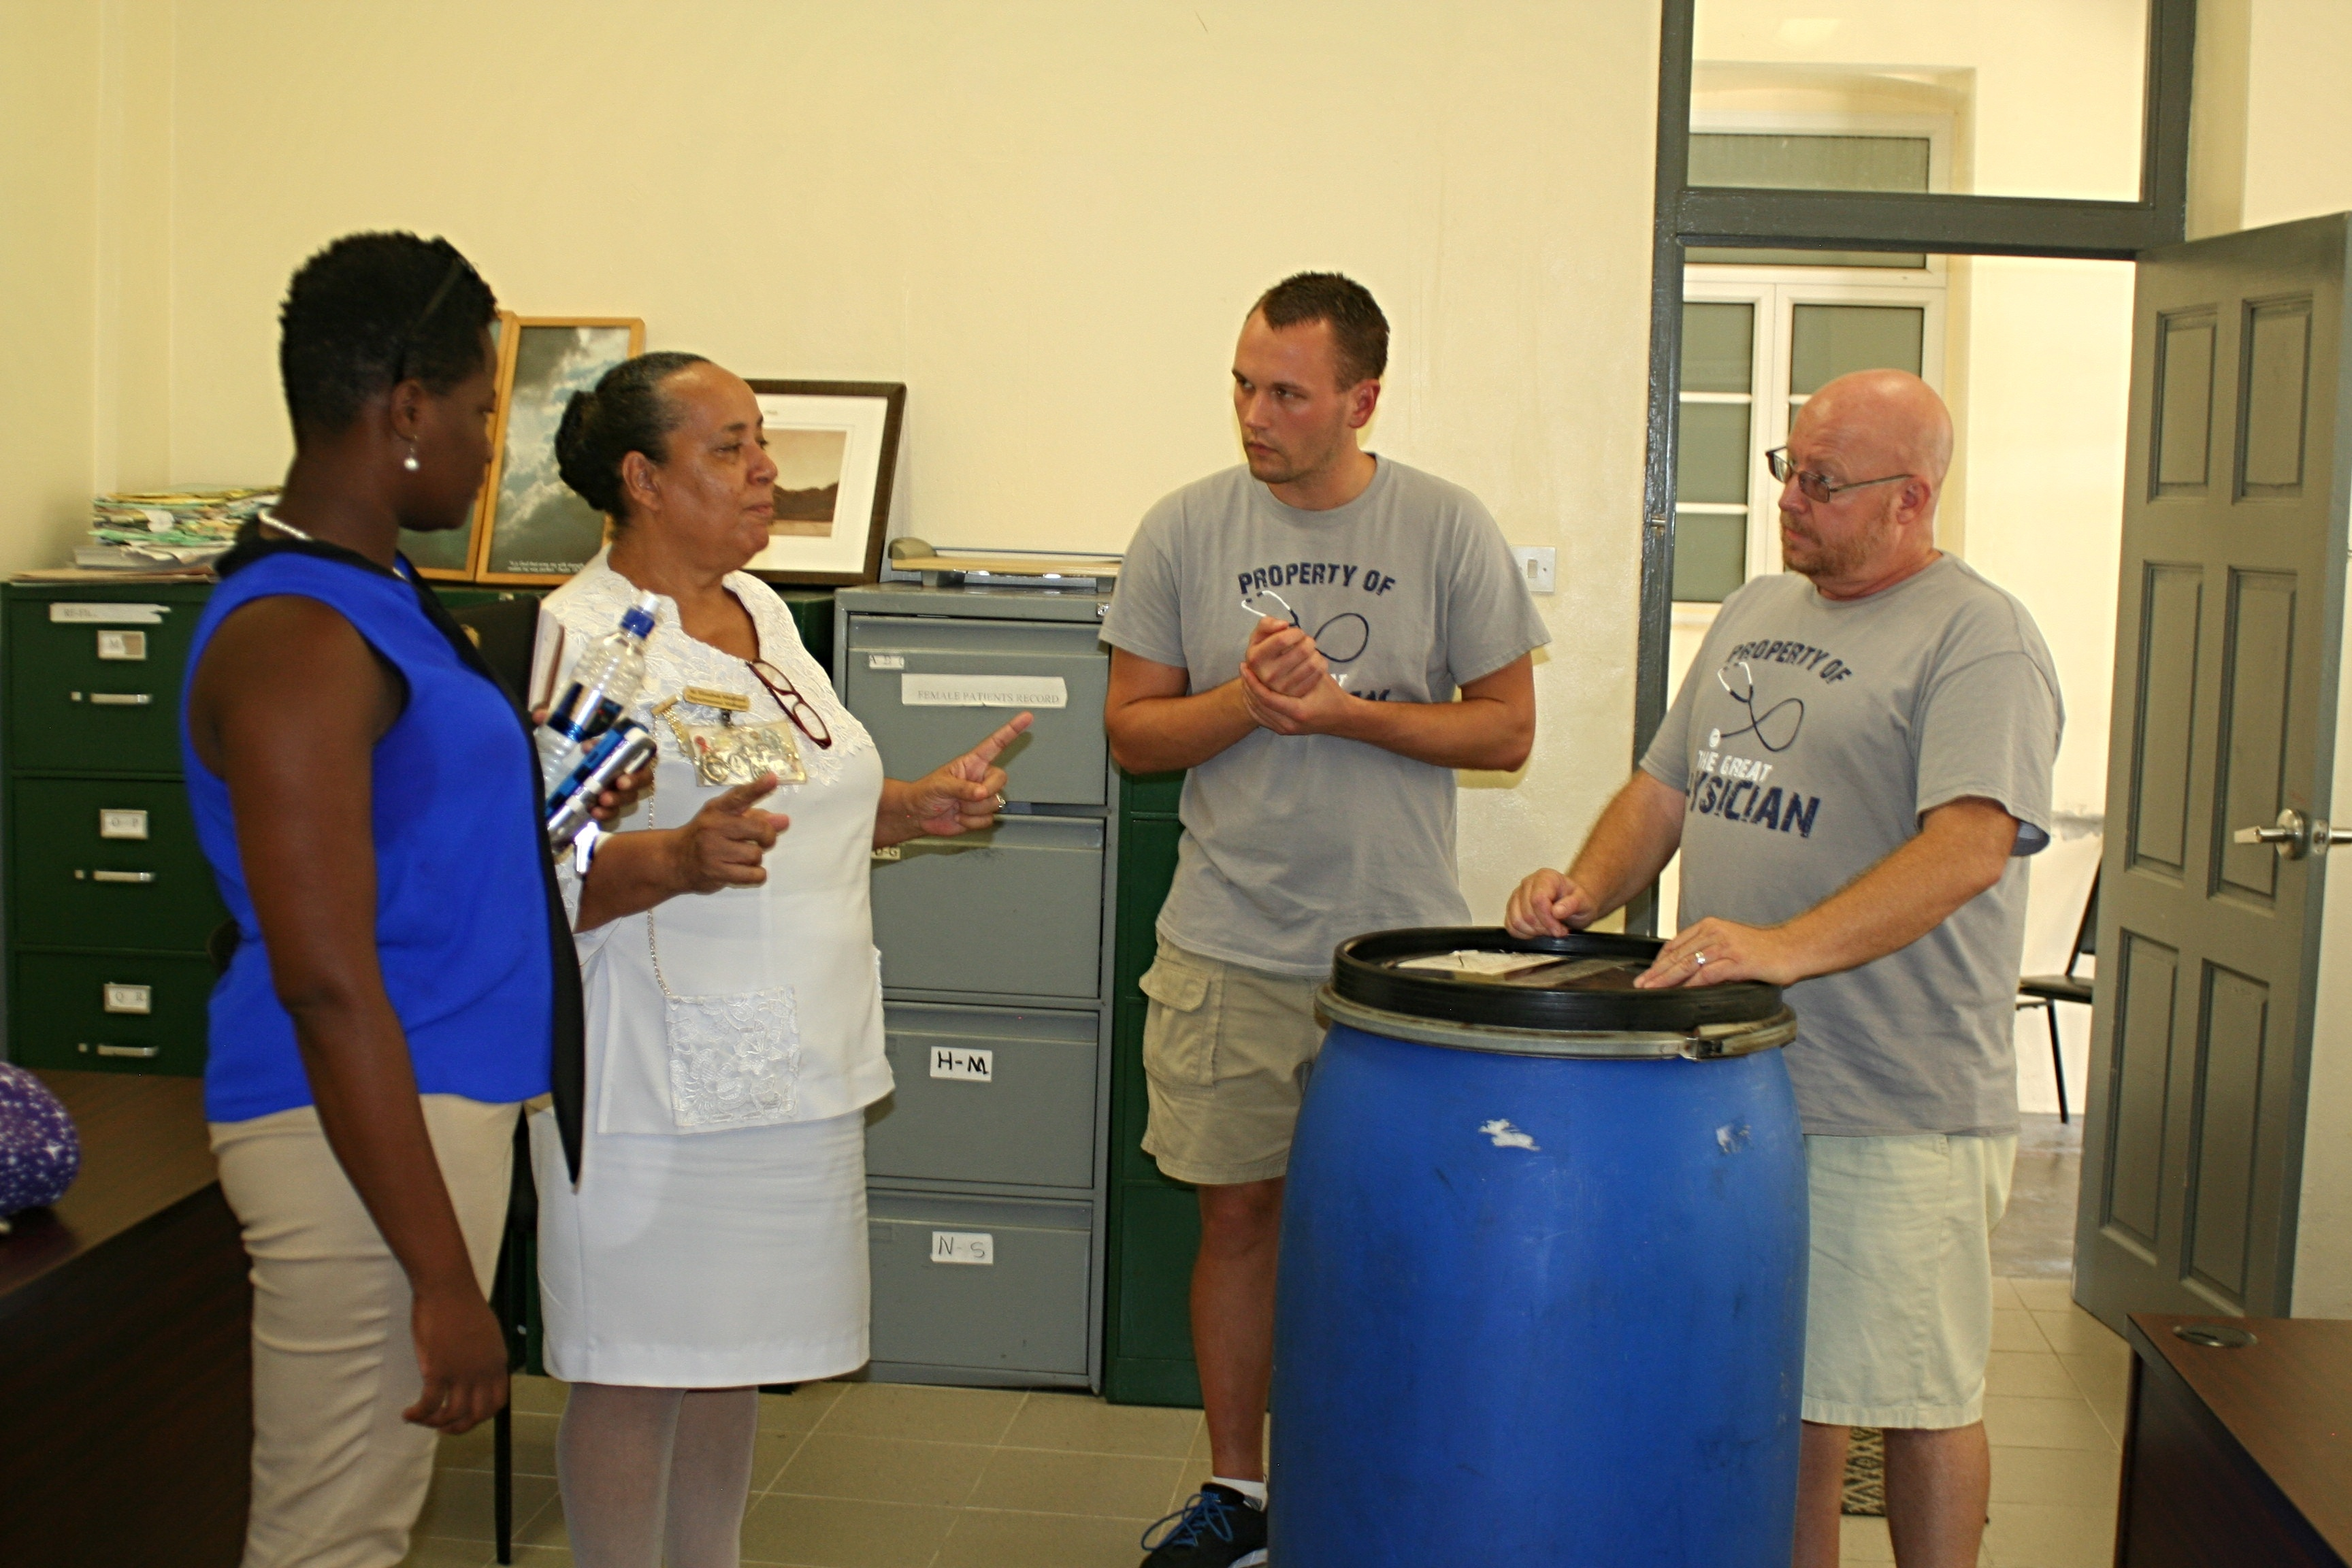 Sr. Medford speaks with the team from Trinity-092102-edited.jpg